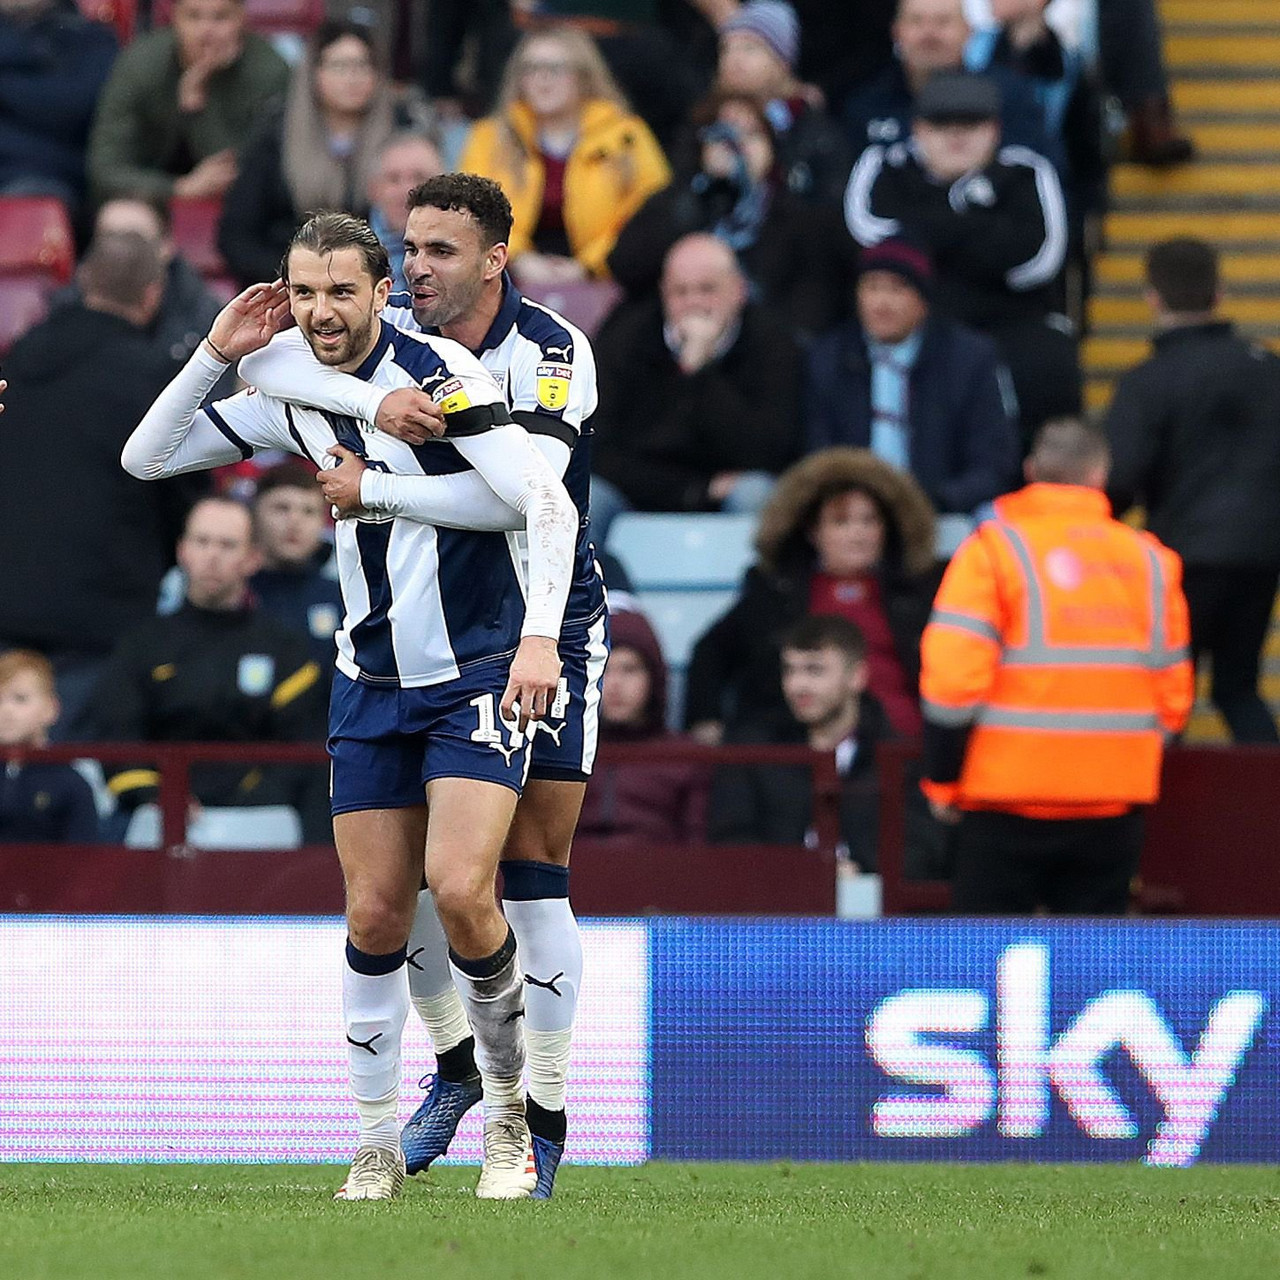 Aston Villa 0-2 West Brom: Baggies prevail in the Midlands Derby